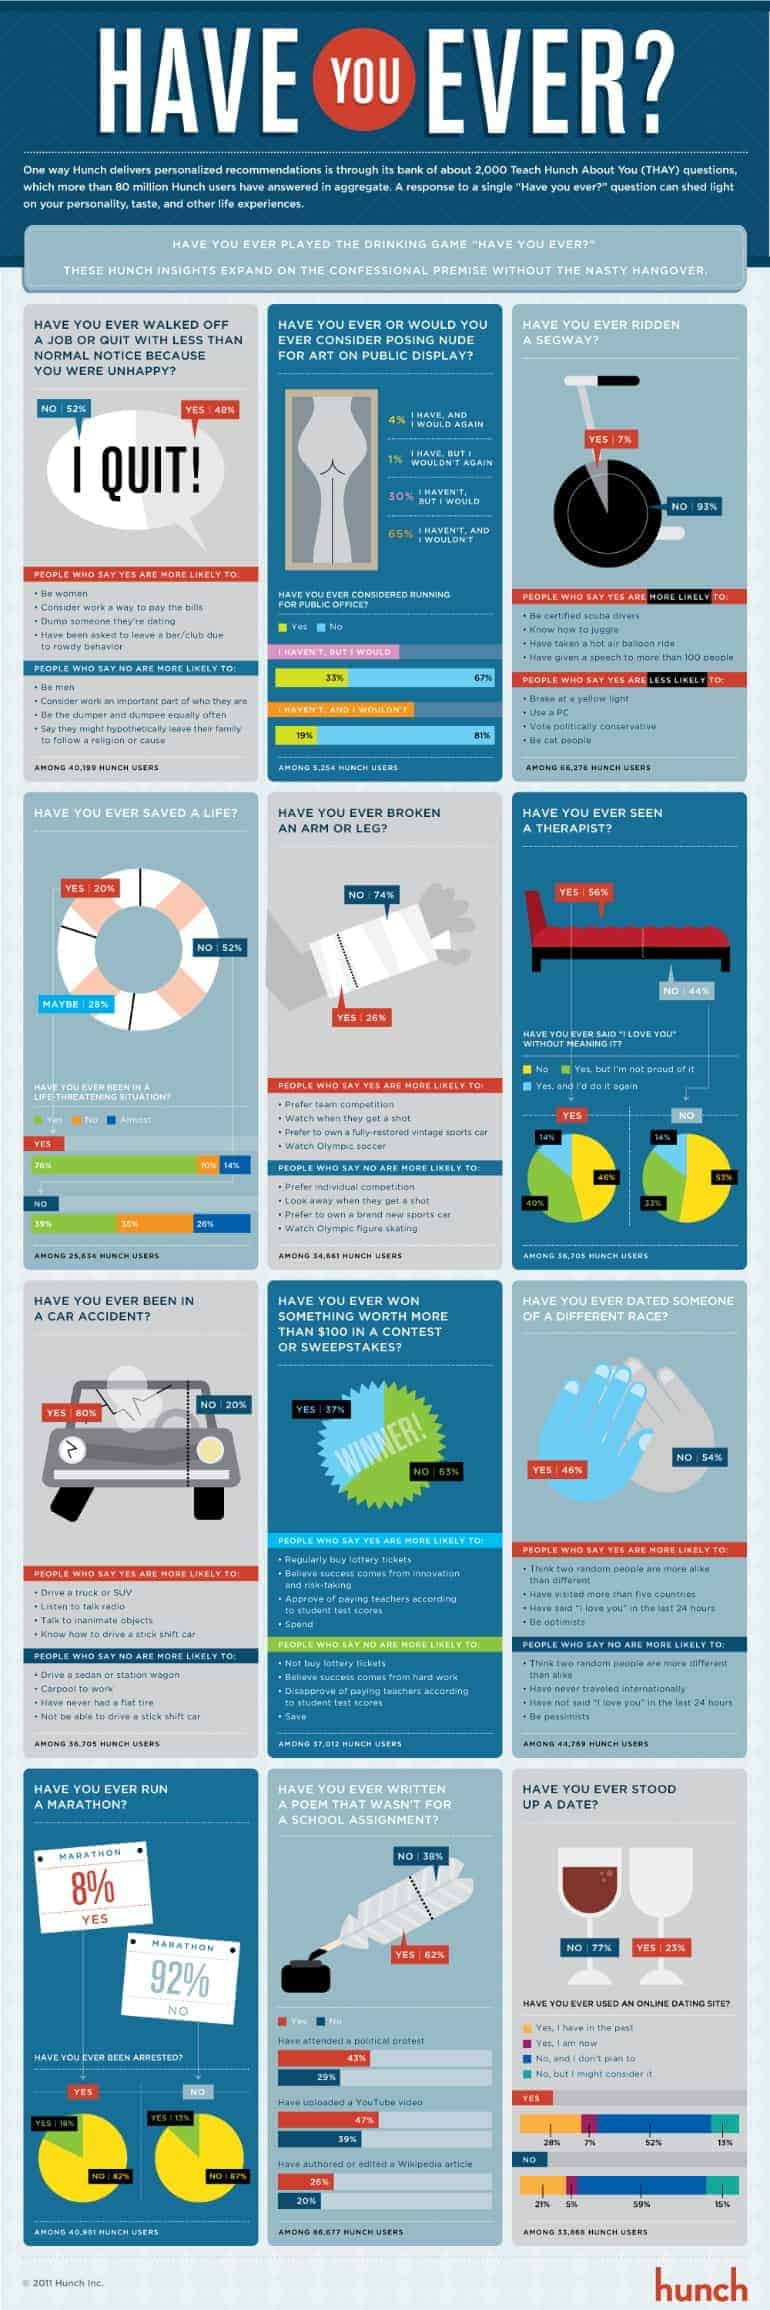 Have You Got Blue Eyes Learn What Make Up Will Make Them: Daily Infographic